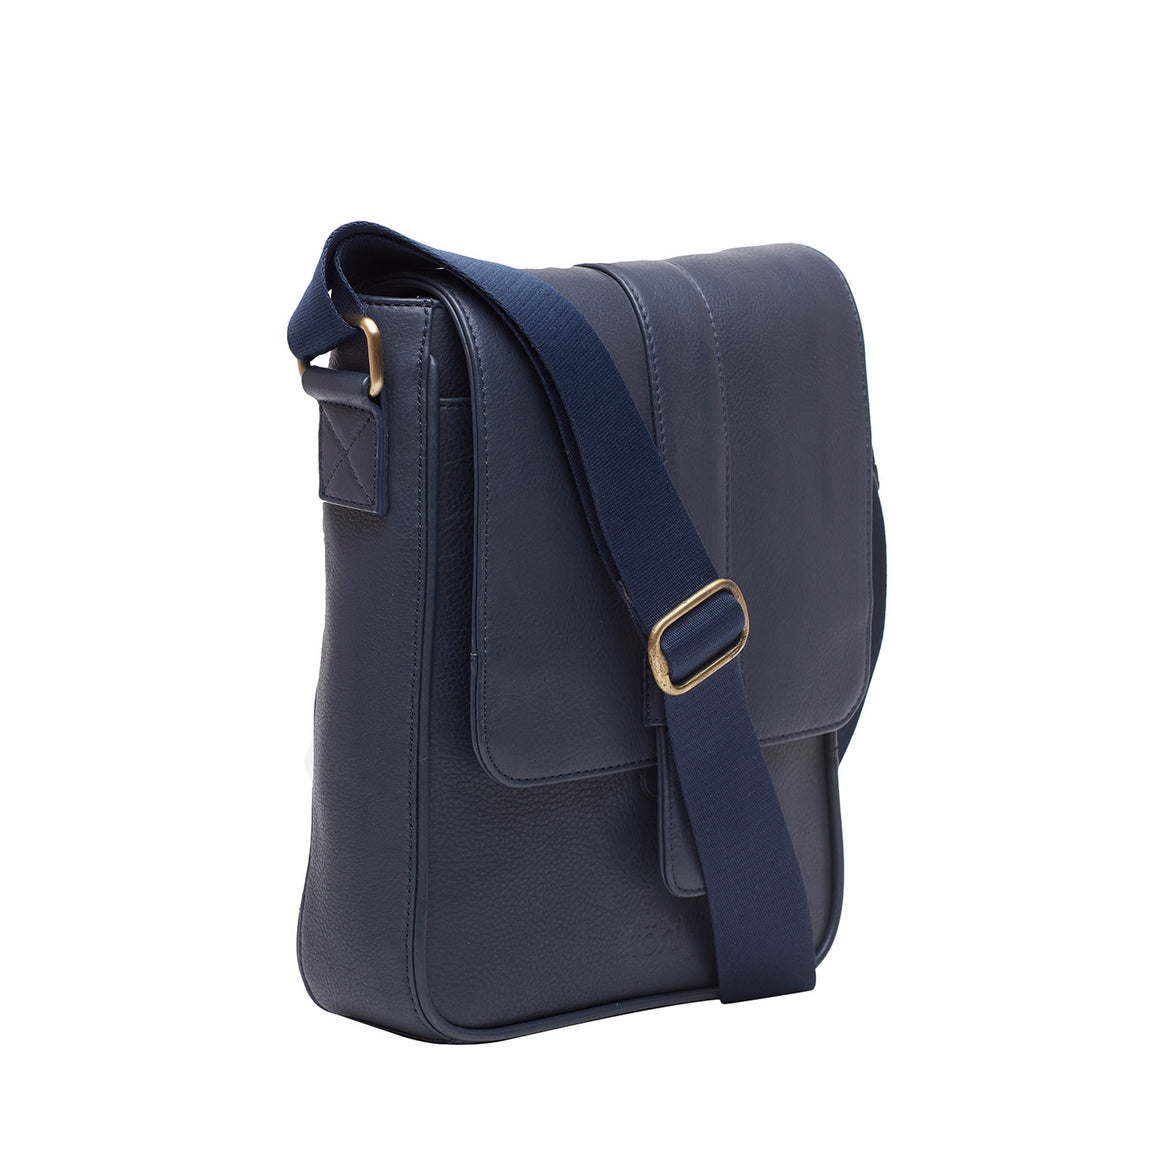 MS 0002 - TOHL RAMPE MEN'S CROSSBODY & MESSENGER - NAVY